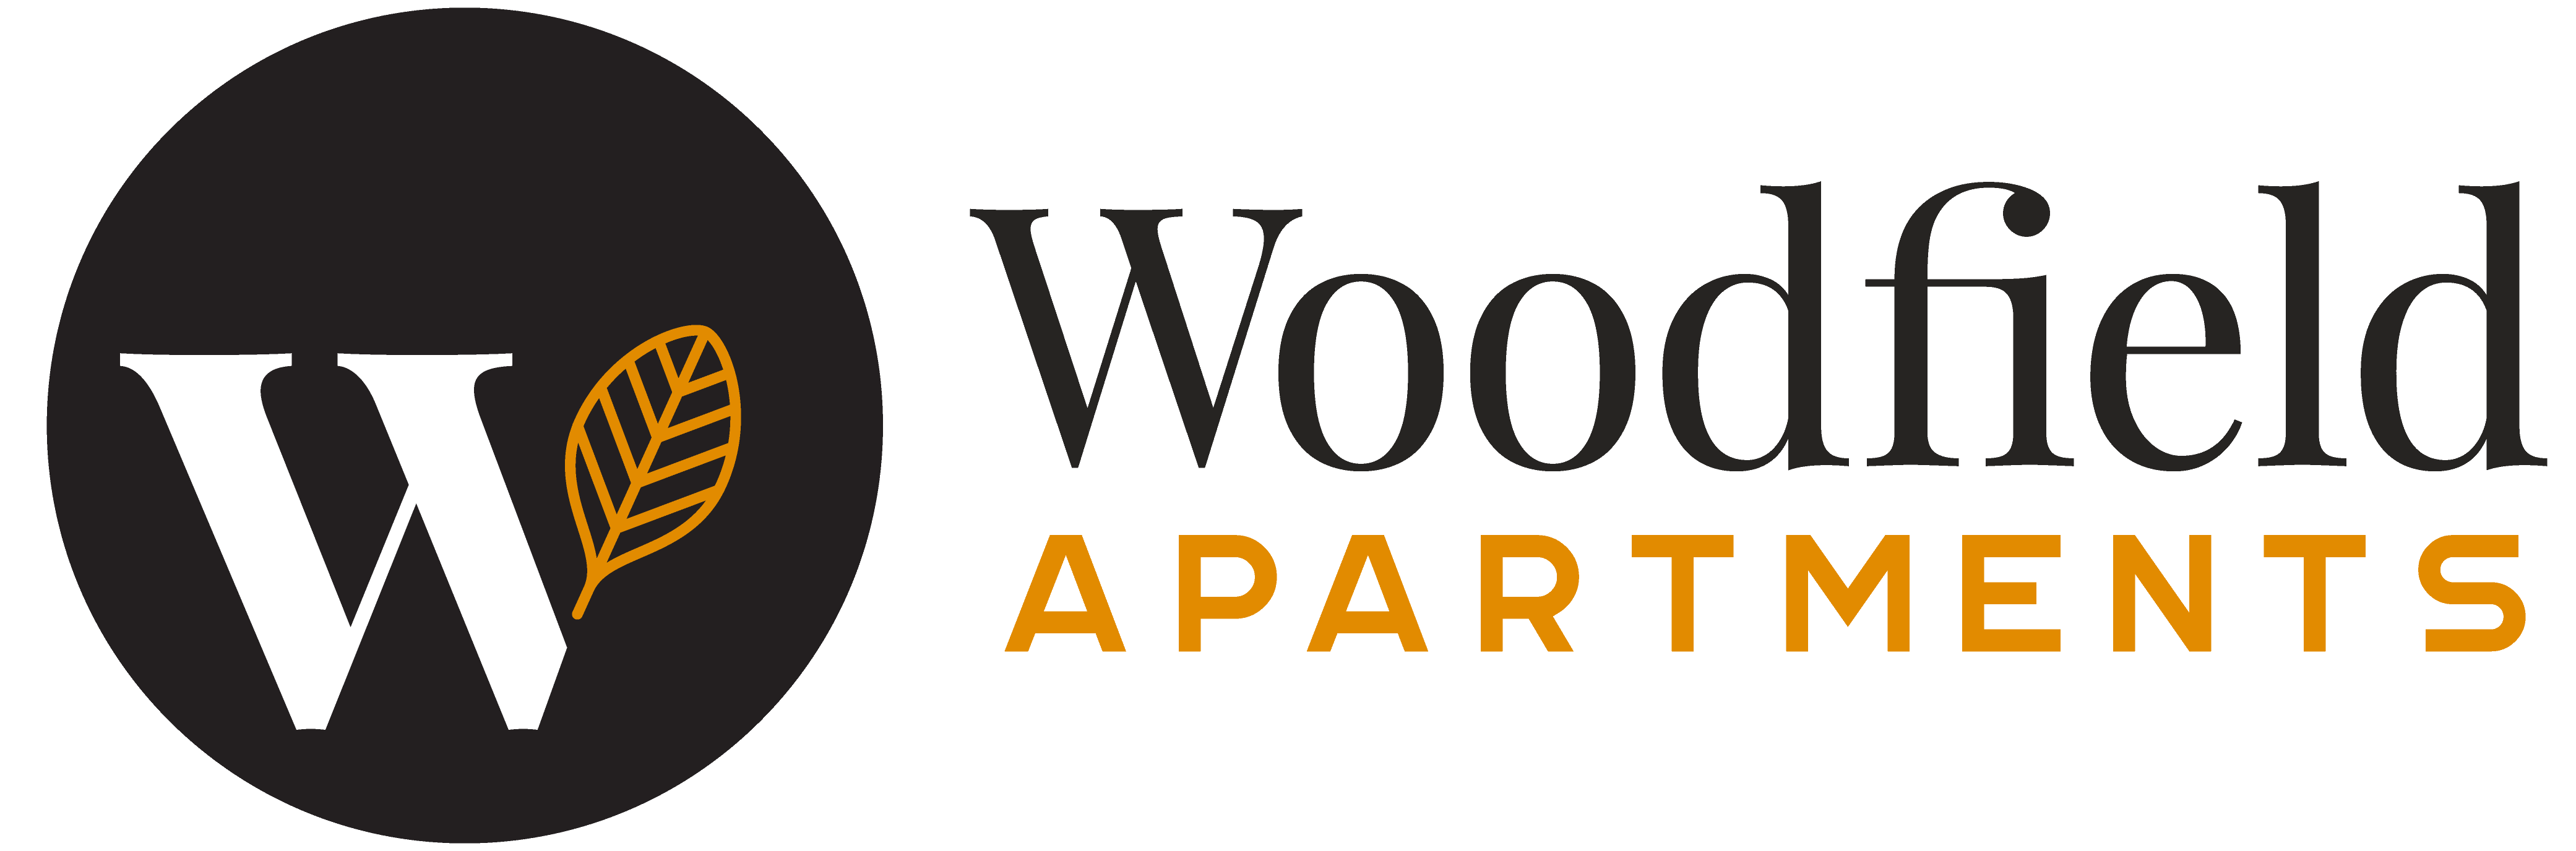 Woodfield Apartments